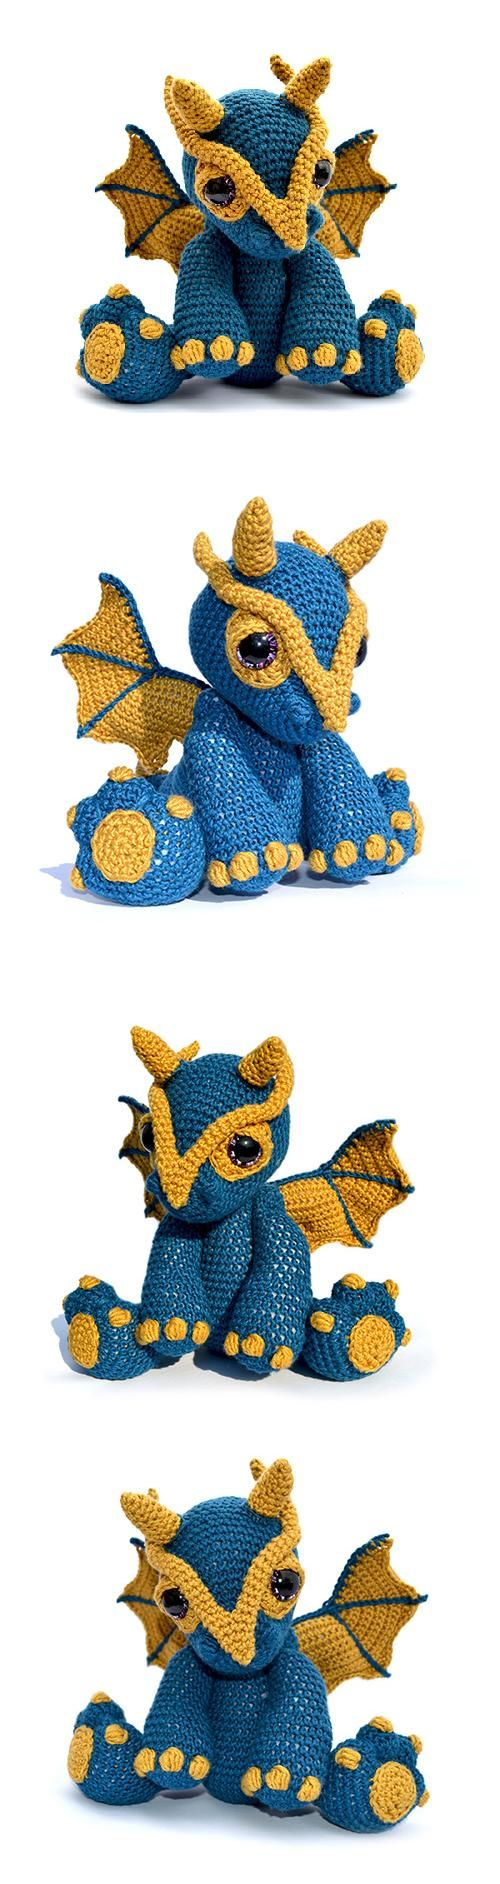 Found at Amigurumipatterns.net http://www.amigurumipatterns.net/shop/Patchwork-Moose/Clancy-the-dragon/